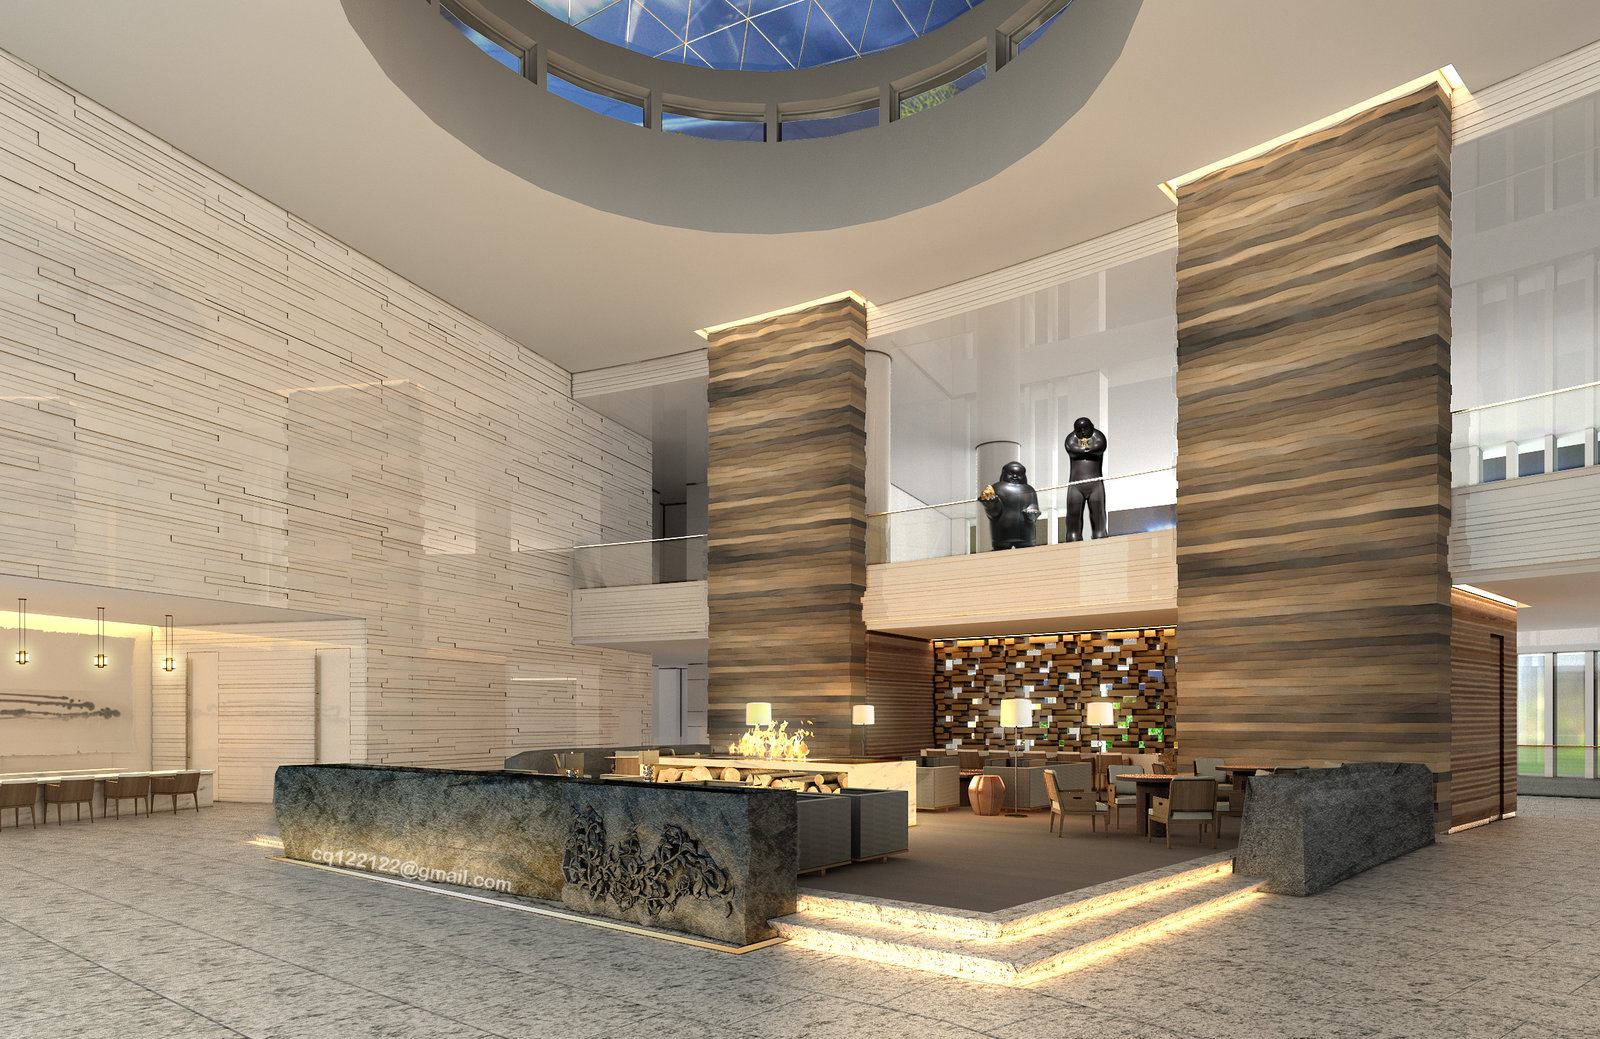 6 ways hotel lobbies teach us about interior design for Contemporary hotel design